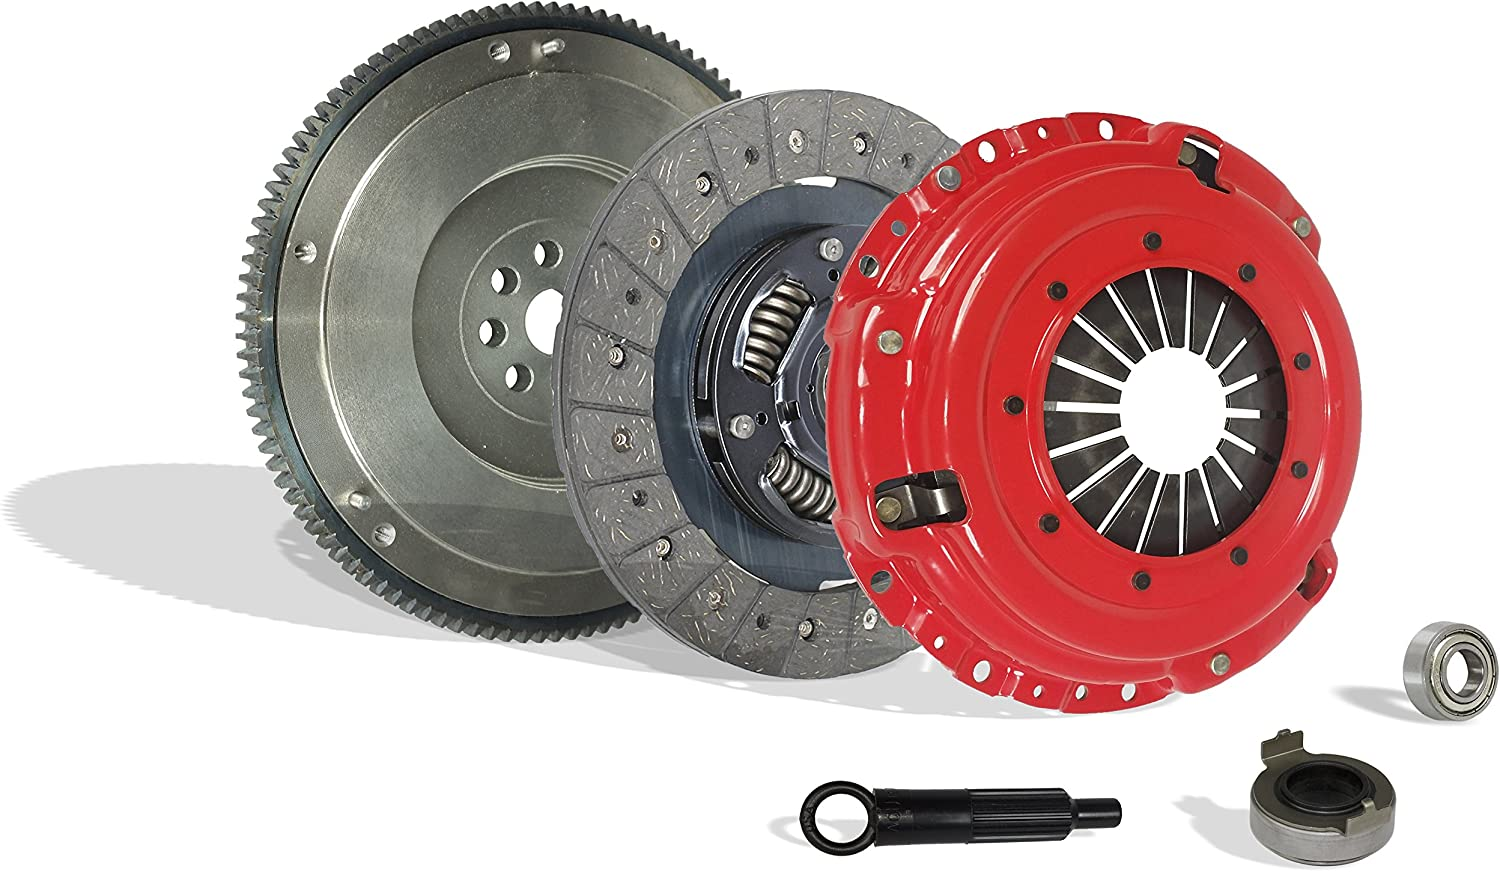 Flywheel Spec: .112+; Stage 1 Clutch With Flywheel Kit Works With Acura Integra Civic Si Del Sol Cr-V Gs Ls Ex Lx Type R Gs-R VTEC Special 1994-2001 1.6L L4 1.8L l4 GAS DOHC Naturally Aspirated